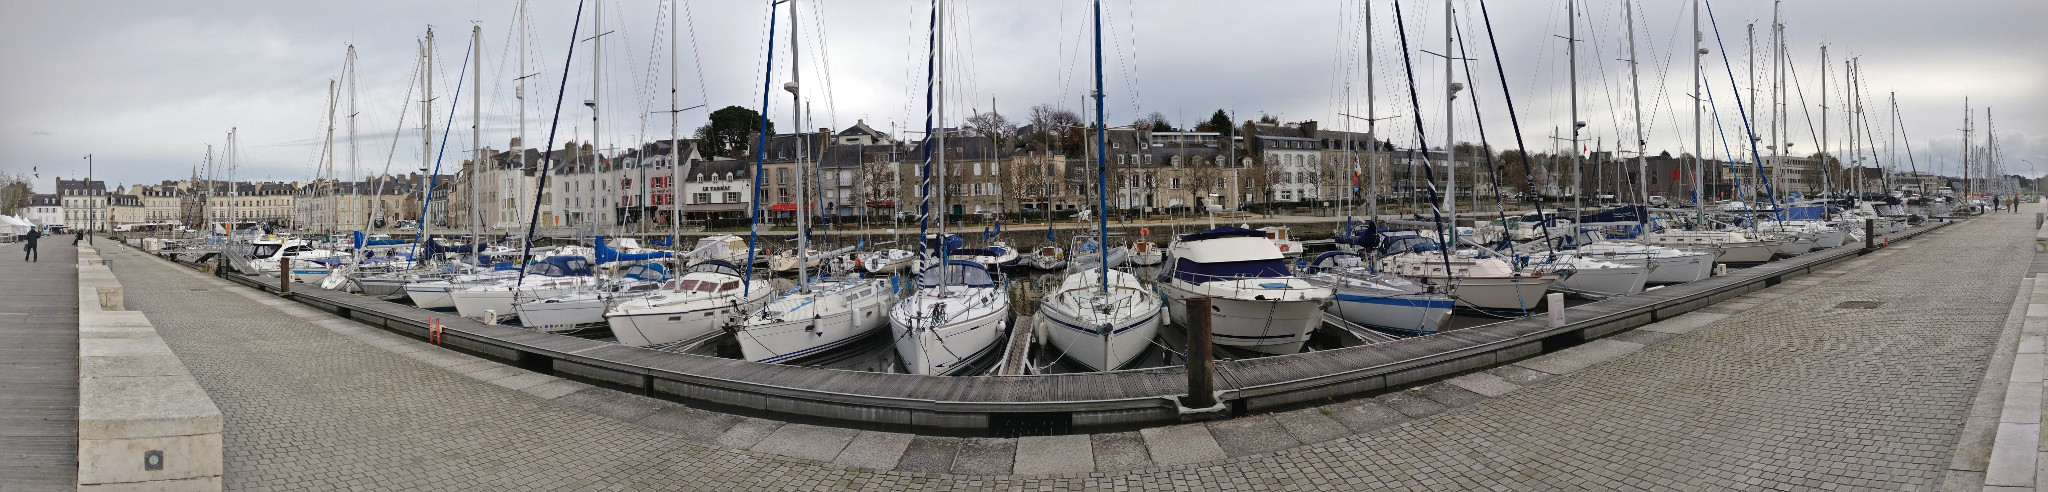 Panoramic of the Port-de-Vannes, with the famous Place Gambetta in the left